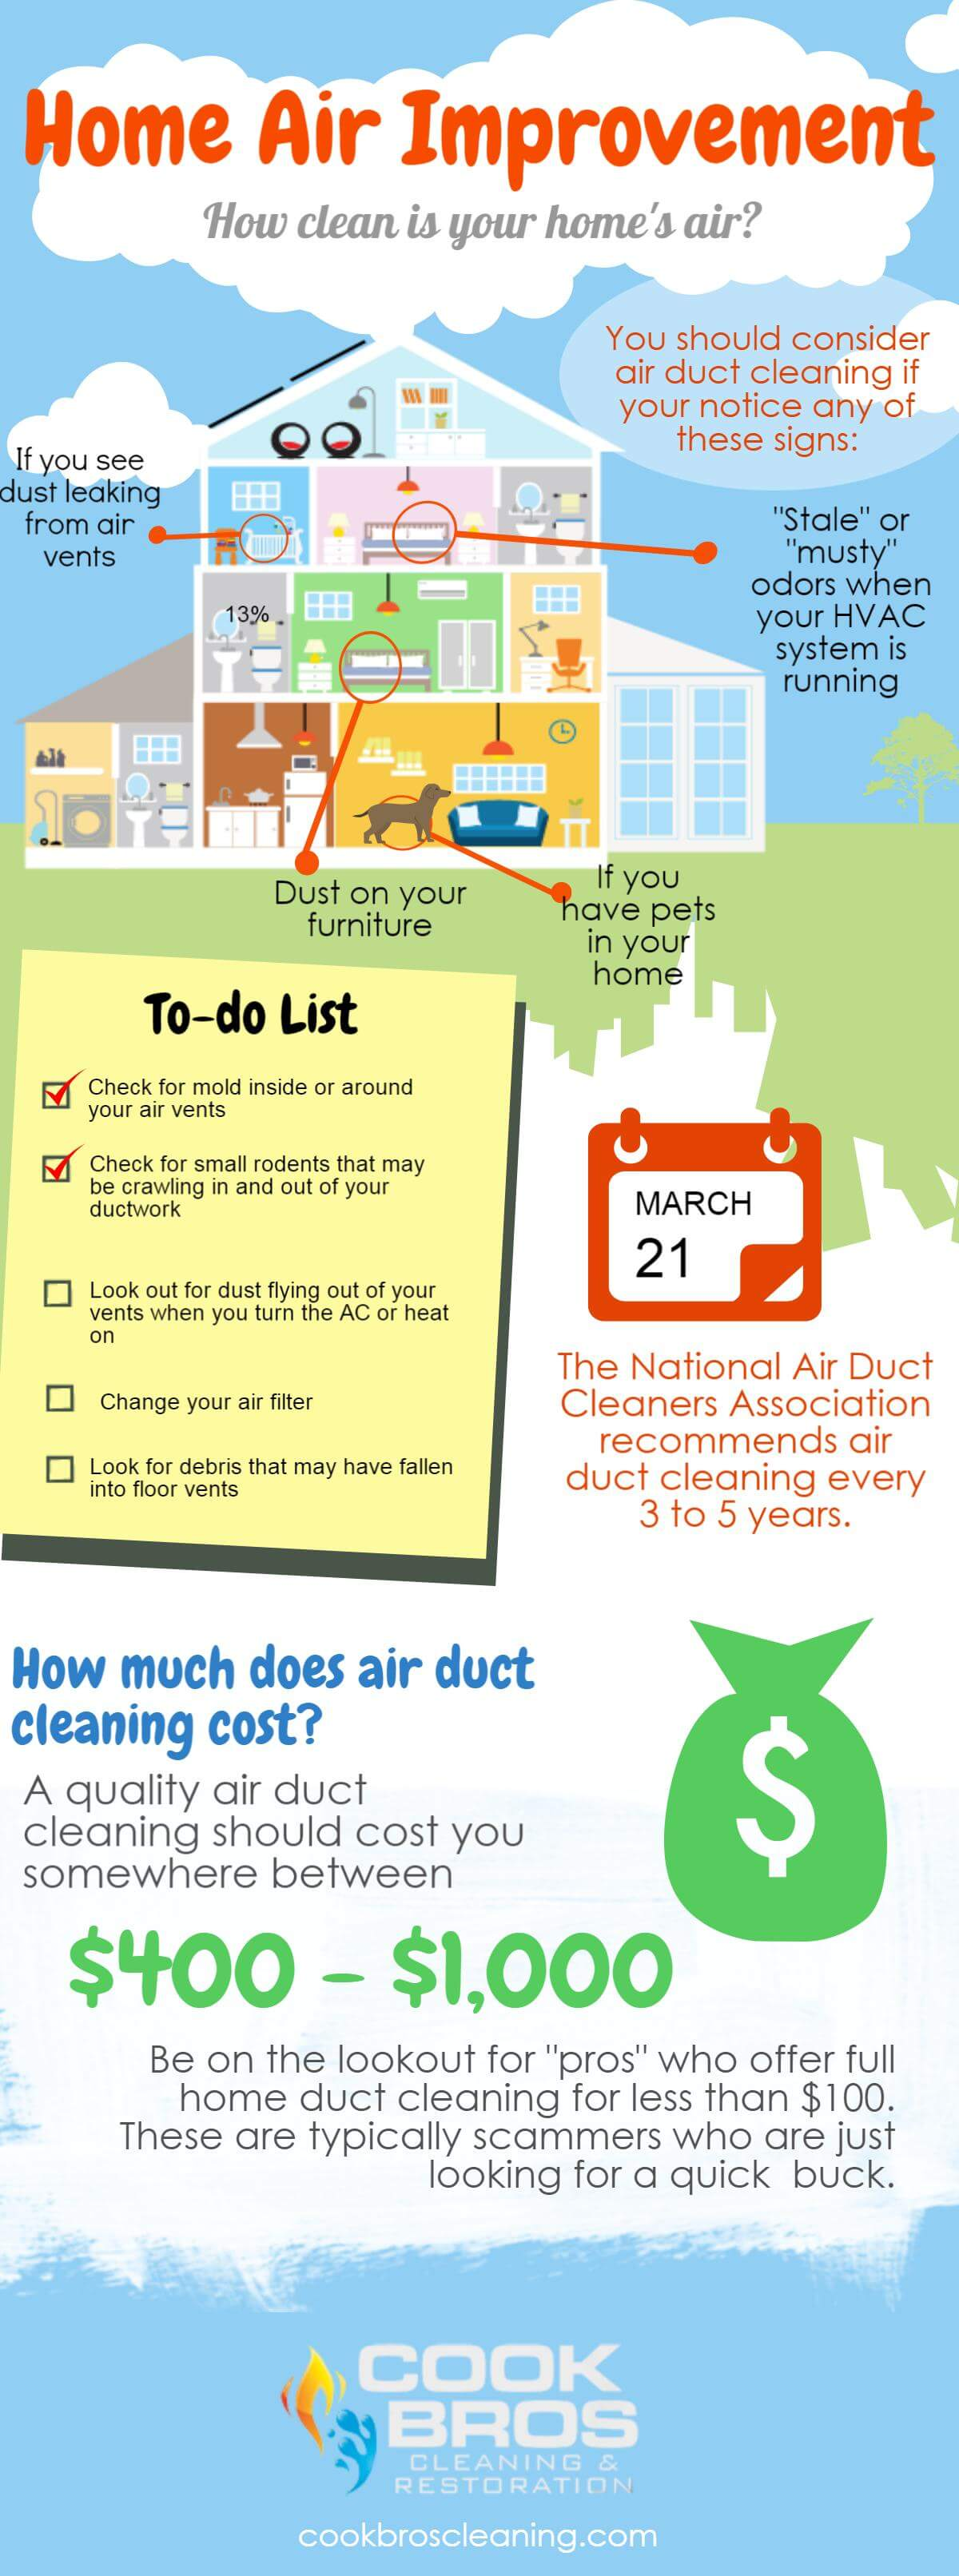 Top 5 Benefits of Air Duct Cleaning